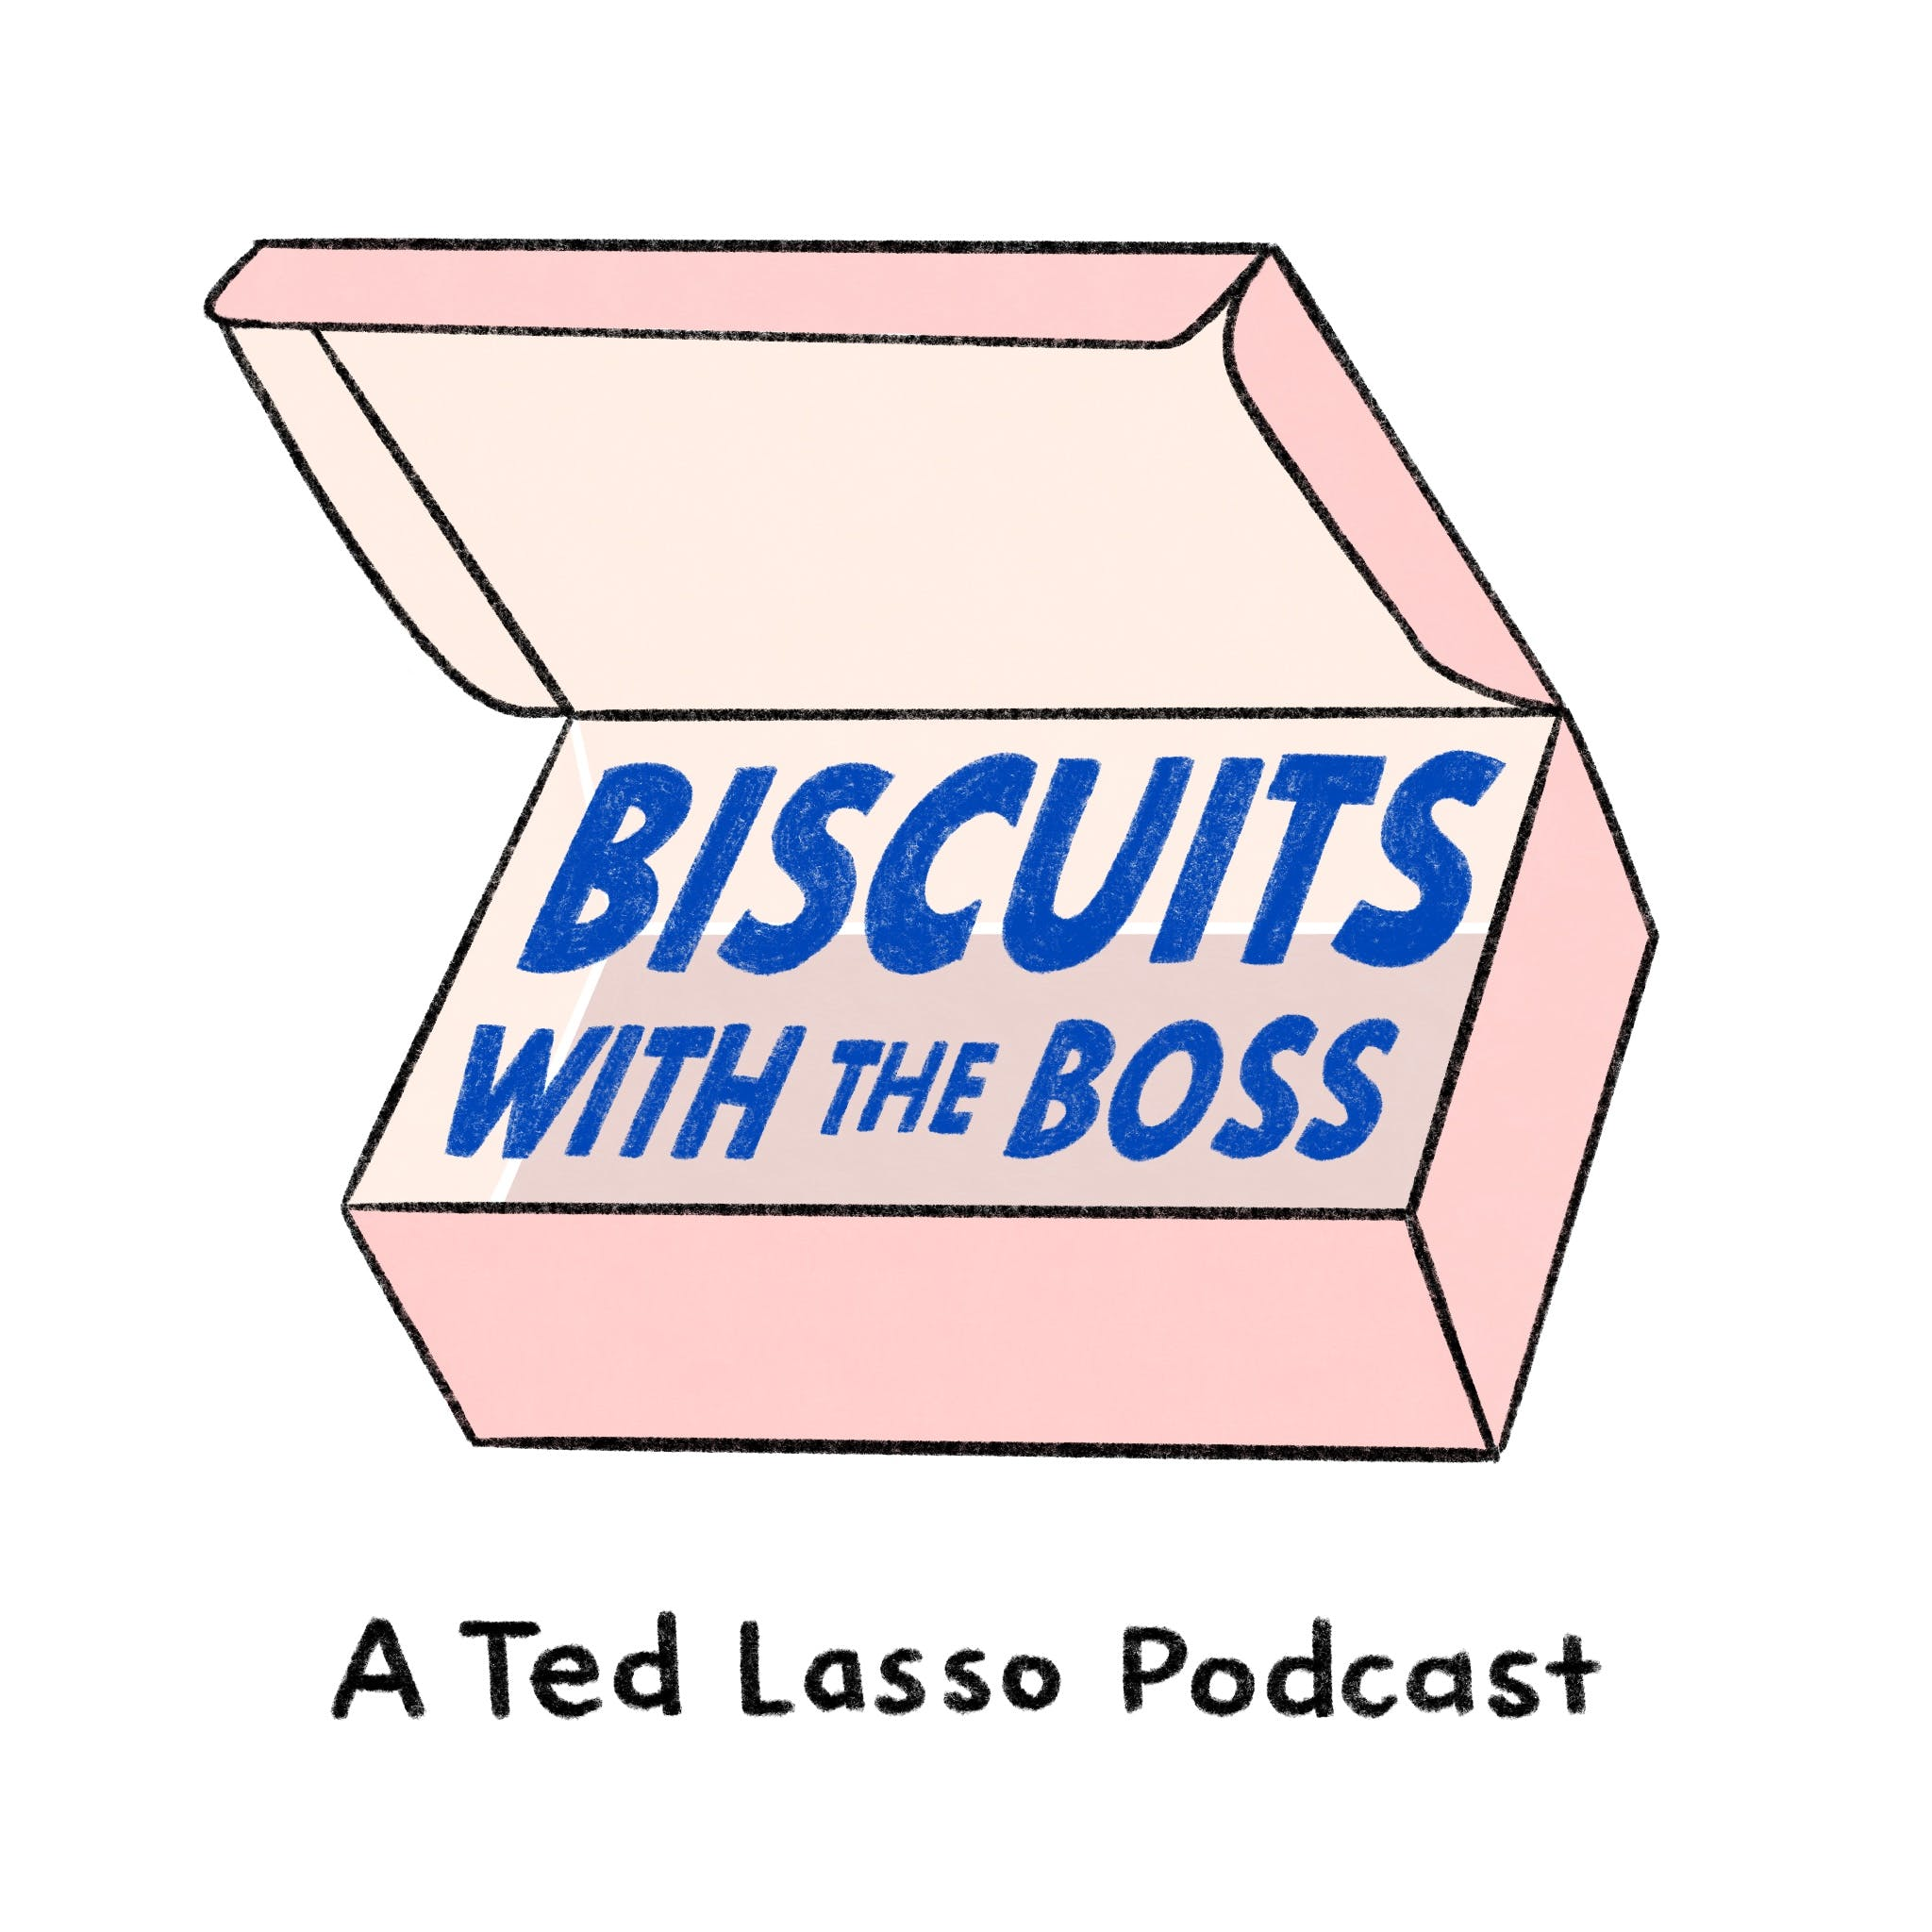 MSPC Presents: Biscuits With the Boss - Pregame Interviews